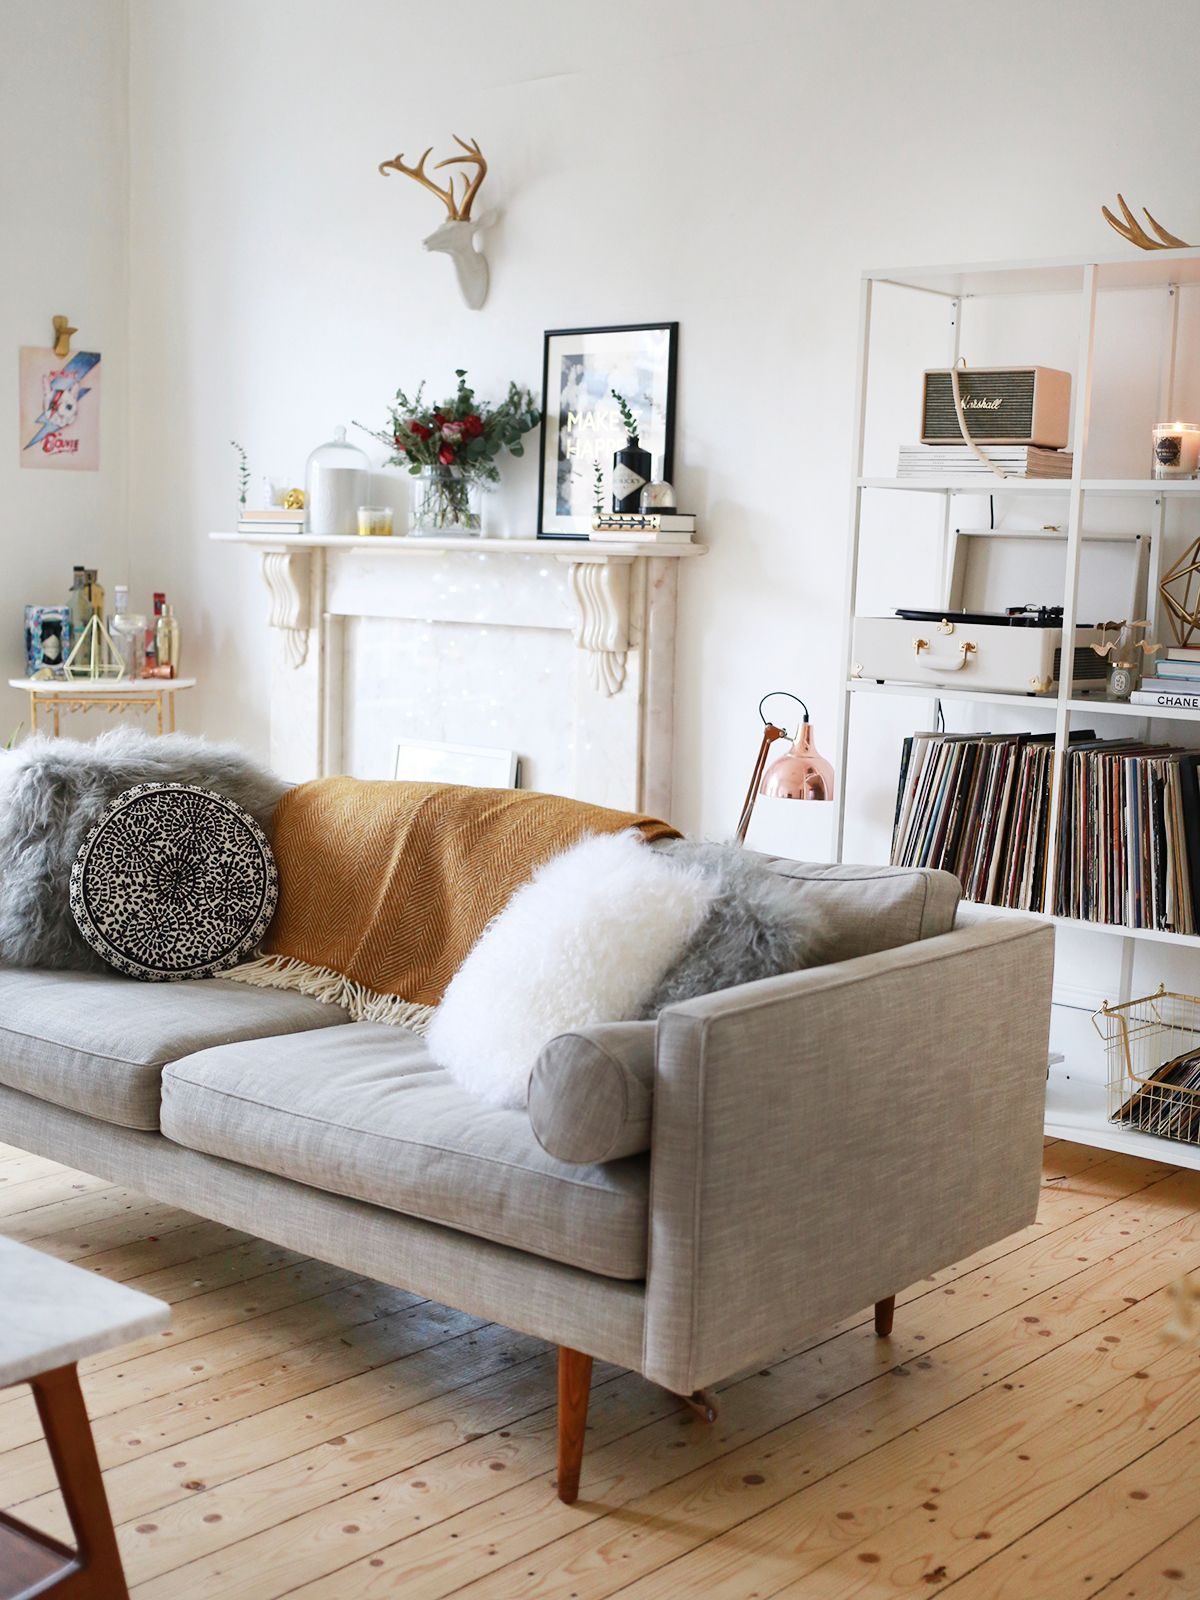 Our New Sofa Home Ideas